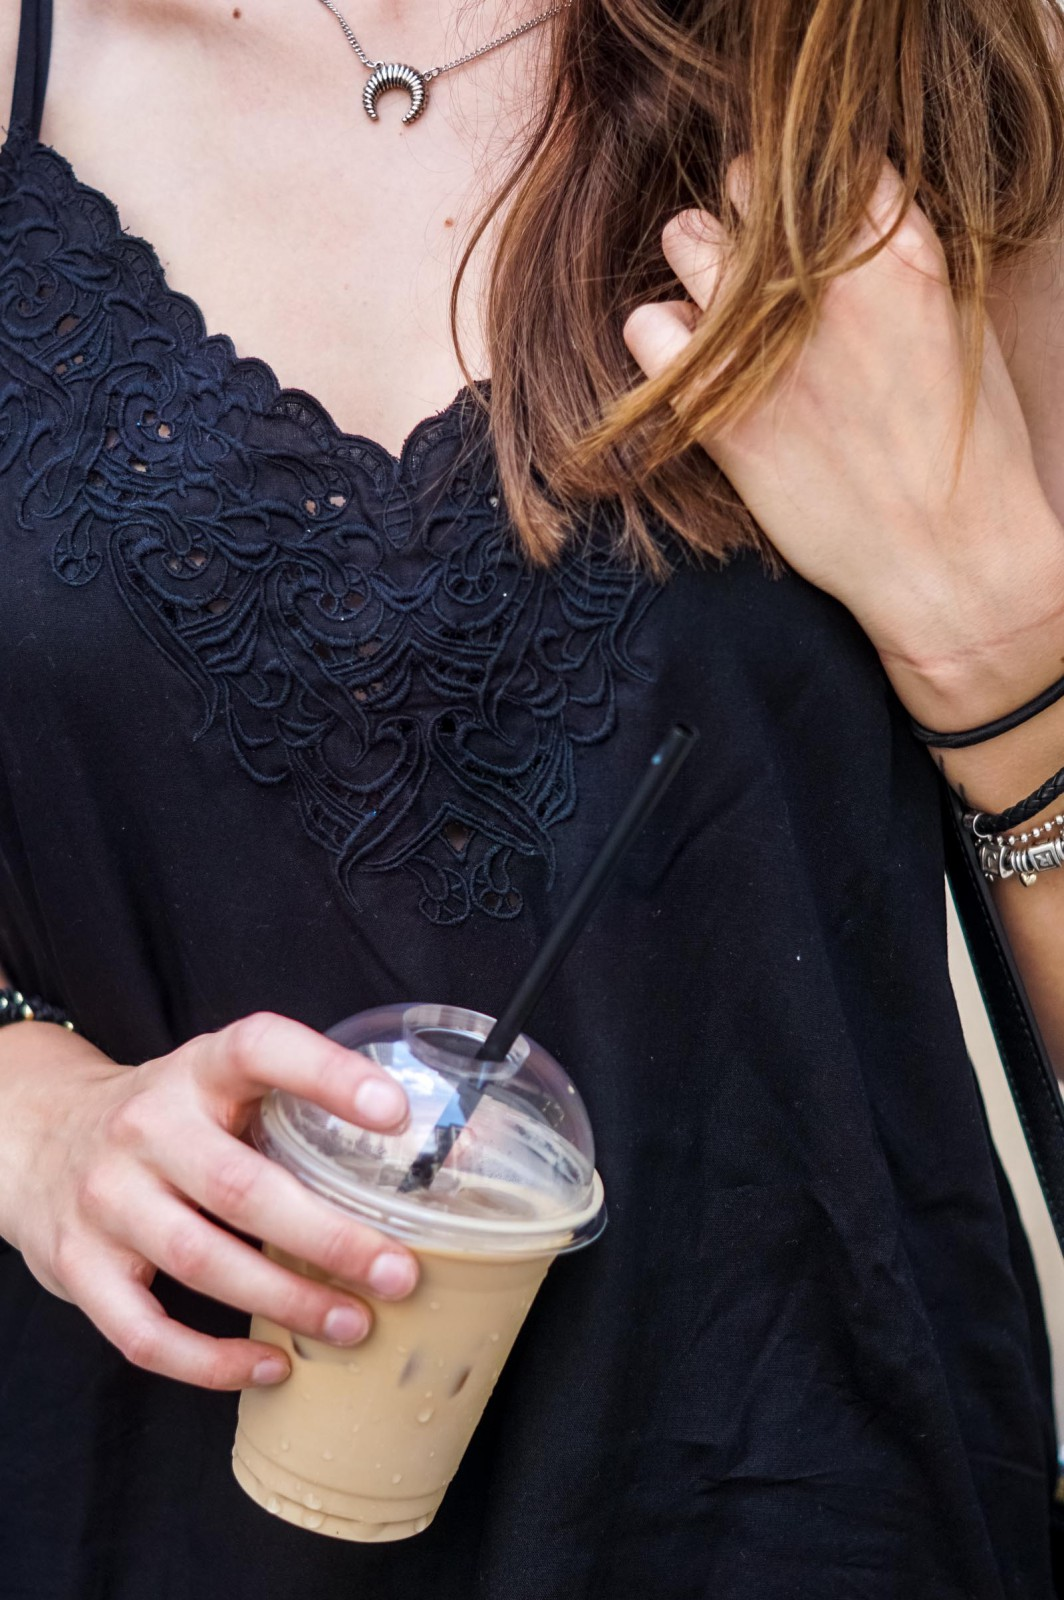 Iced Latte and Black Top